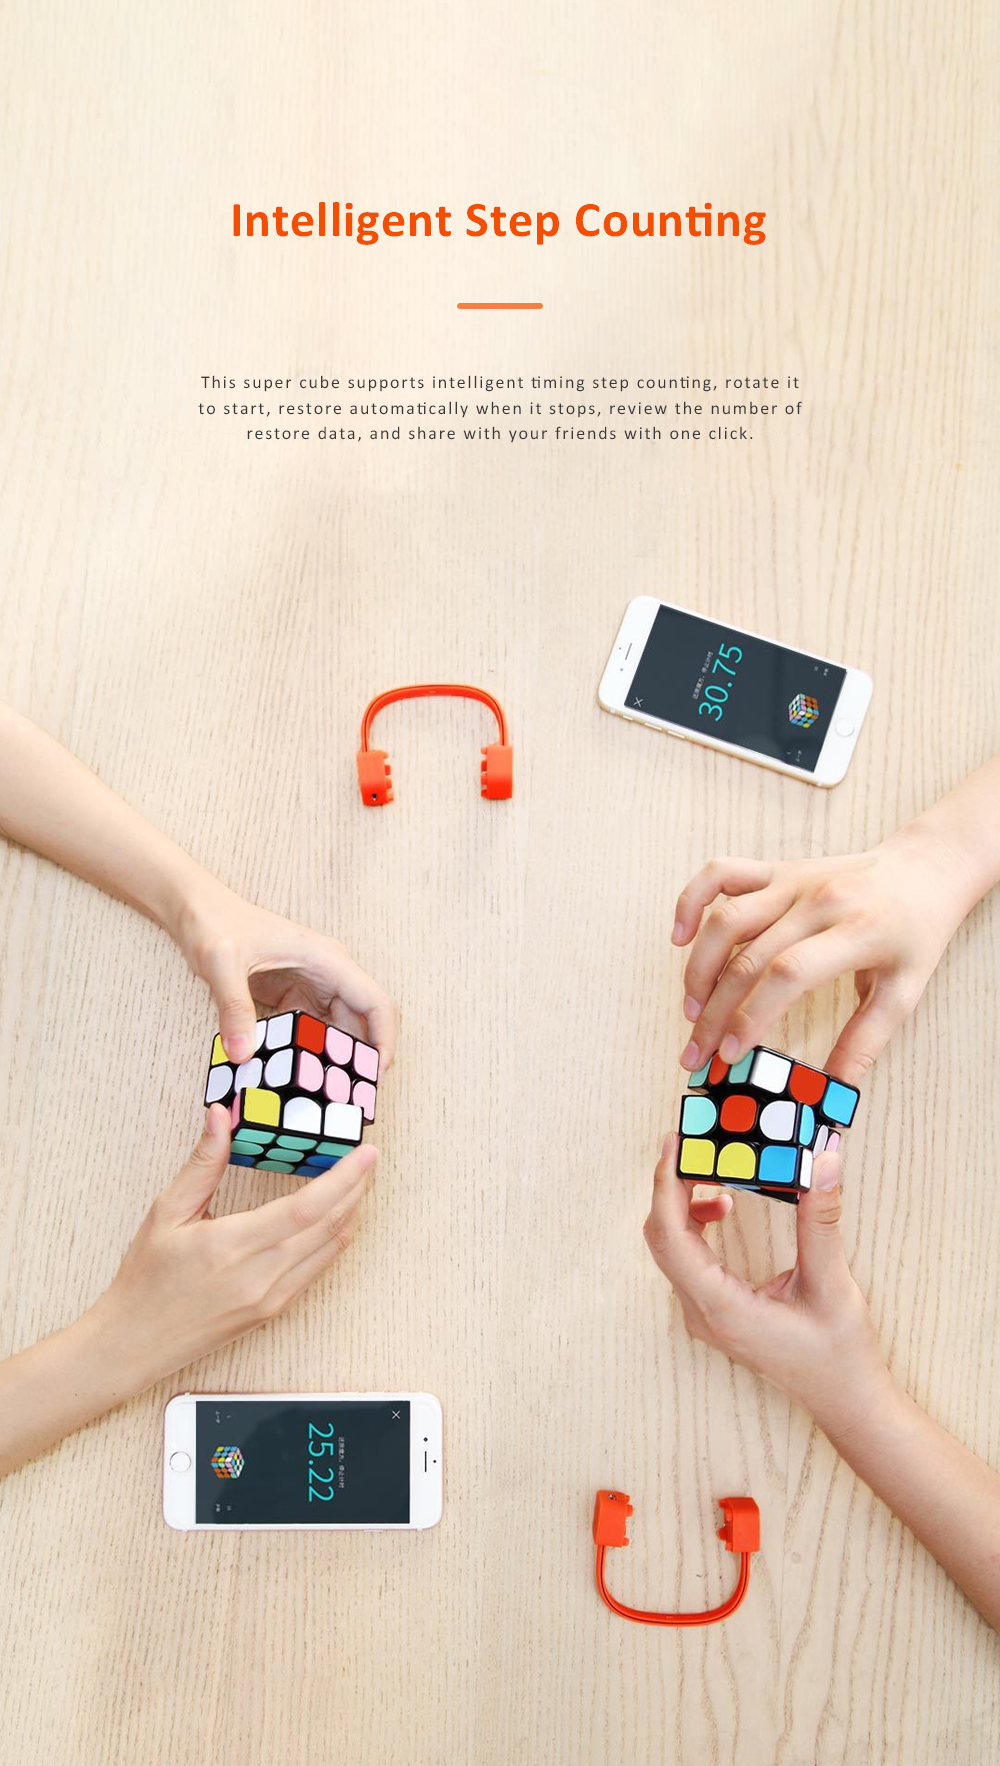 MI GIIKER Intelligent Super Cube Smart Magic Cube with Bluetooth Connection Real-time Sync for Education and Playing 6